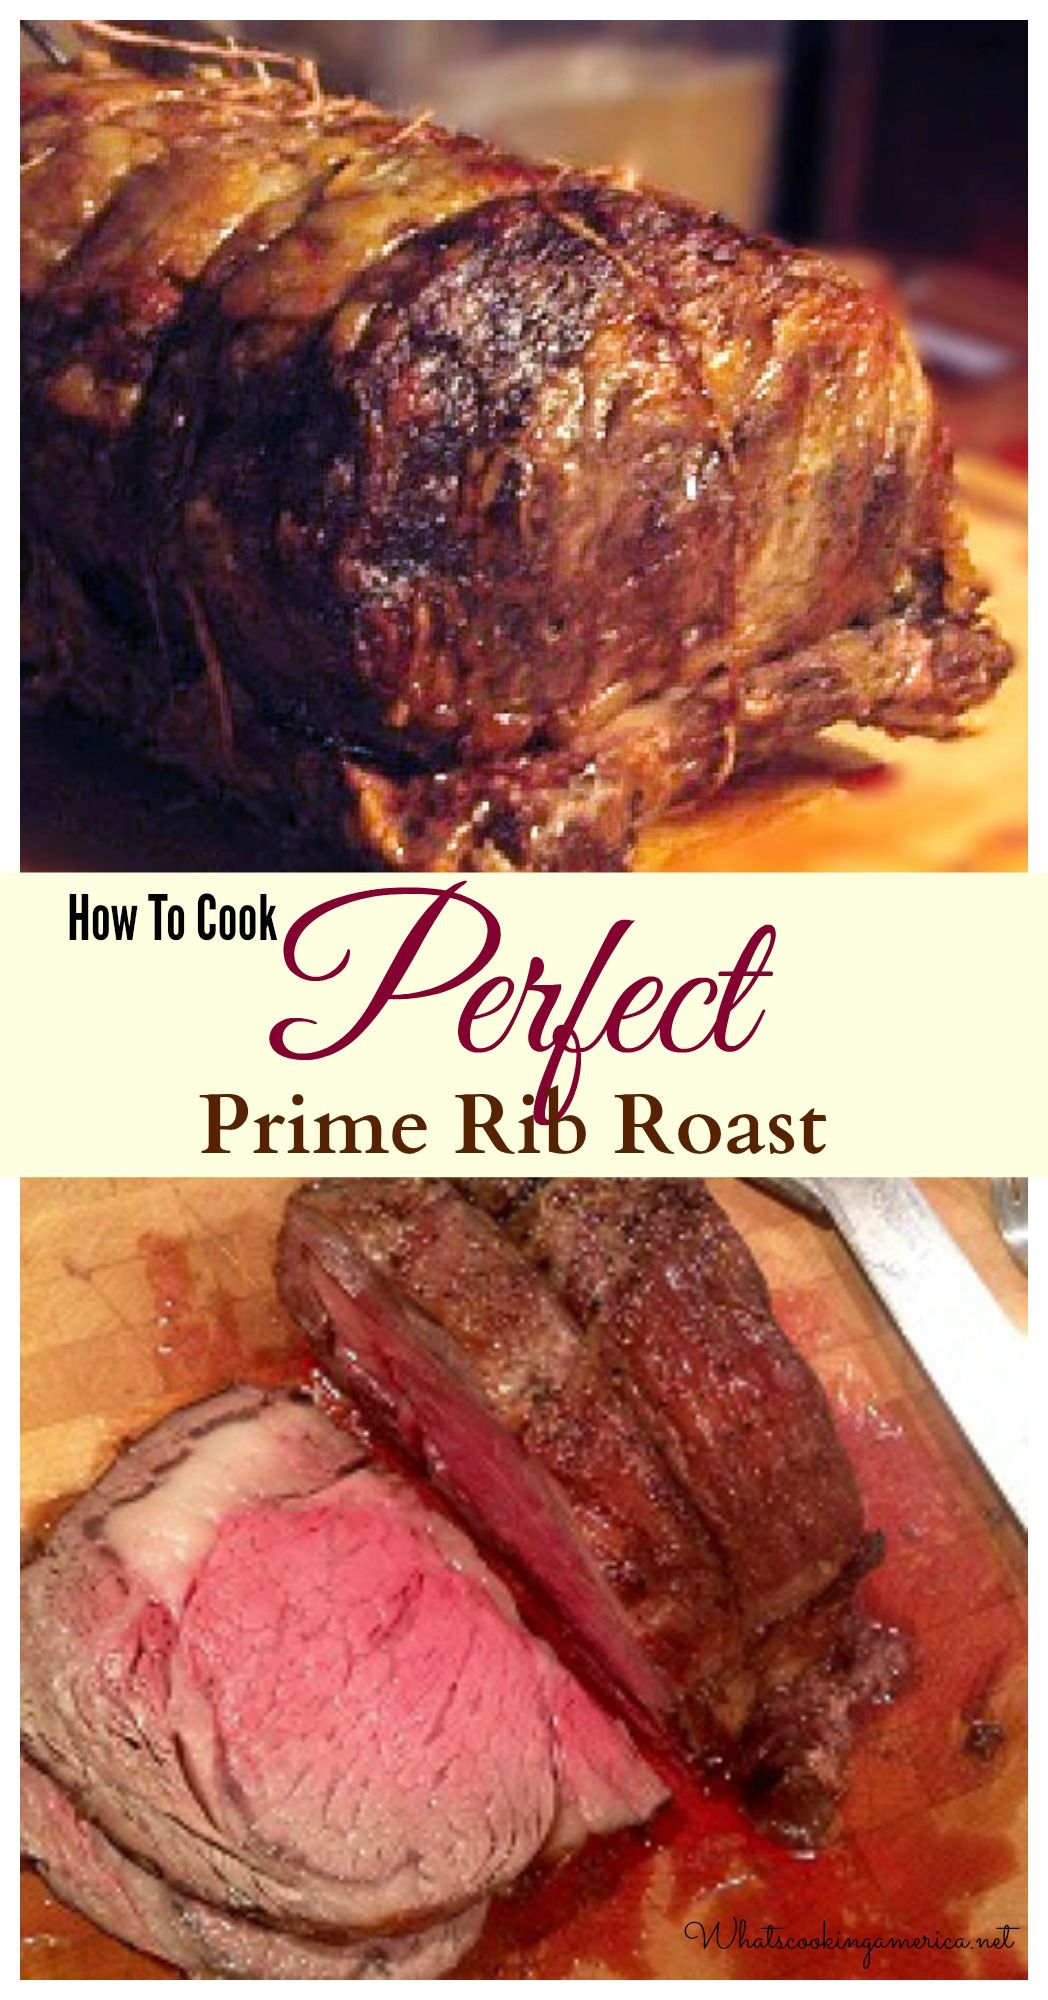 Perfect Prime Rib Roast Recipe And Cooking Instructions Recipe Rib Recipes Cooking Cooking Recipes